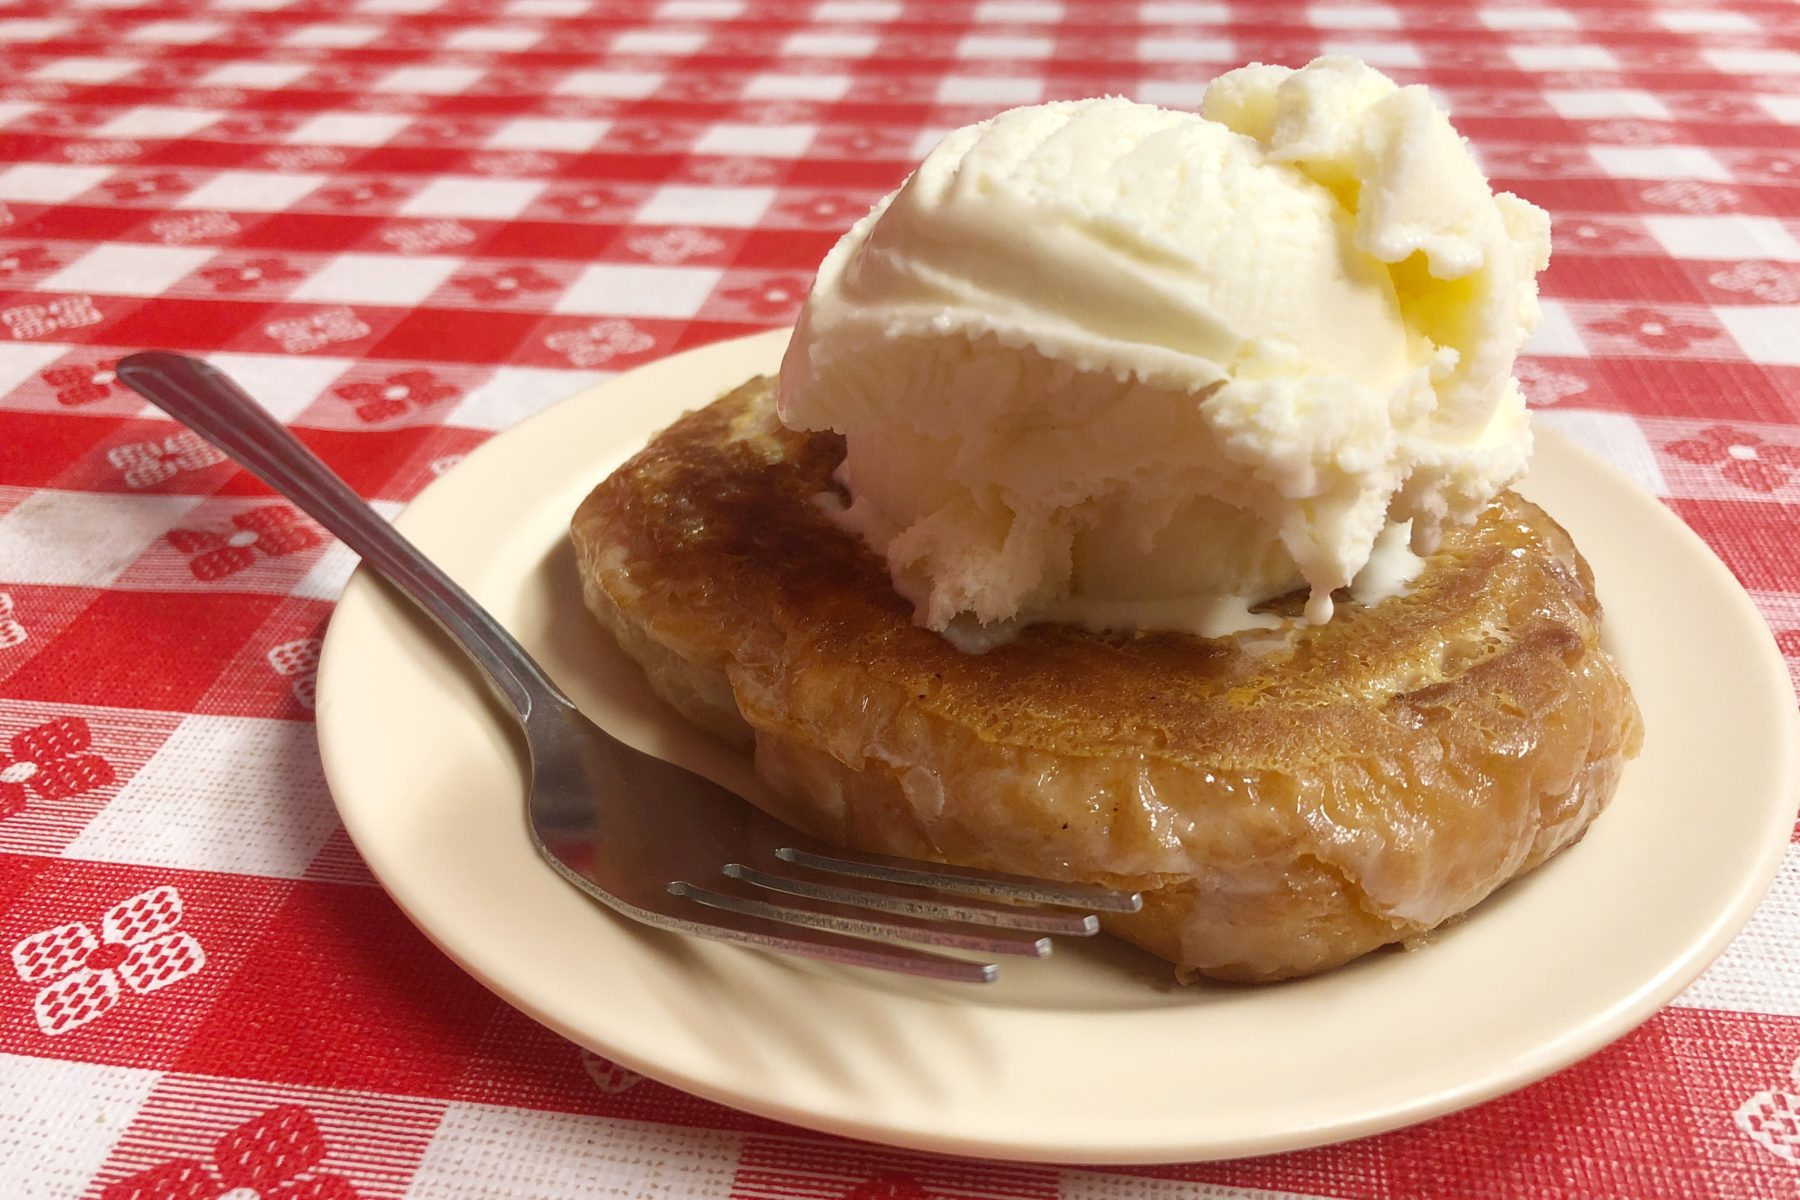 A fried honey bun with a scoop of vanilla ice cream on top at Johnny's Big Burger in Clarksville, Tennessee